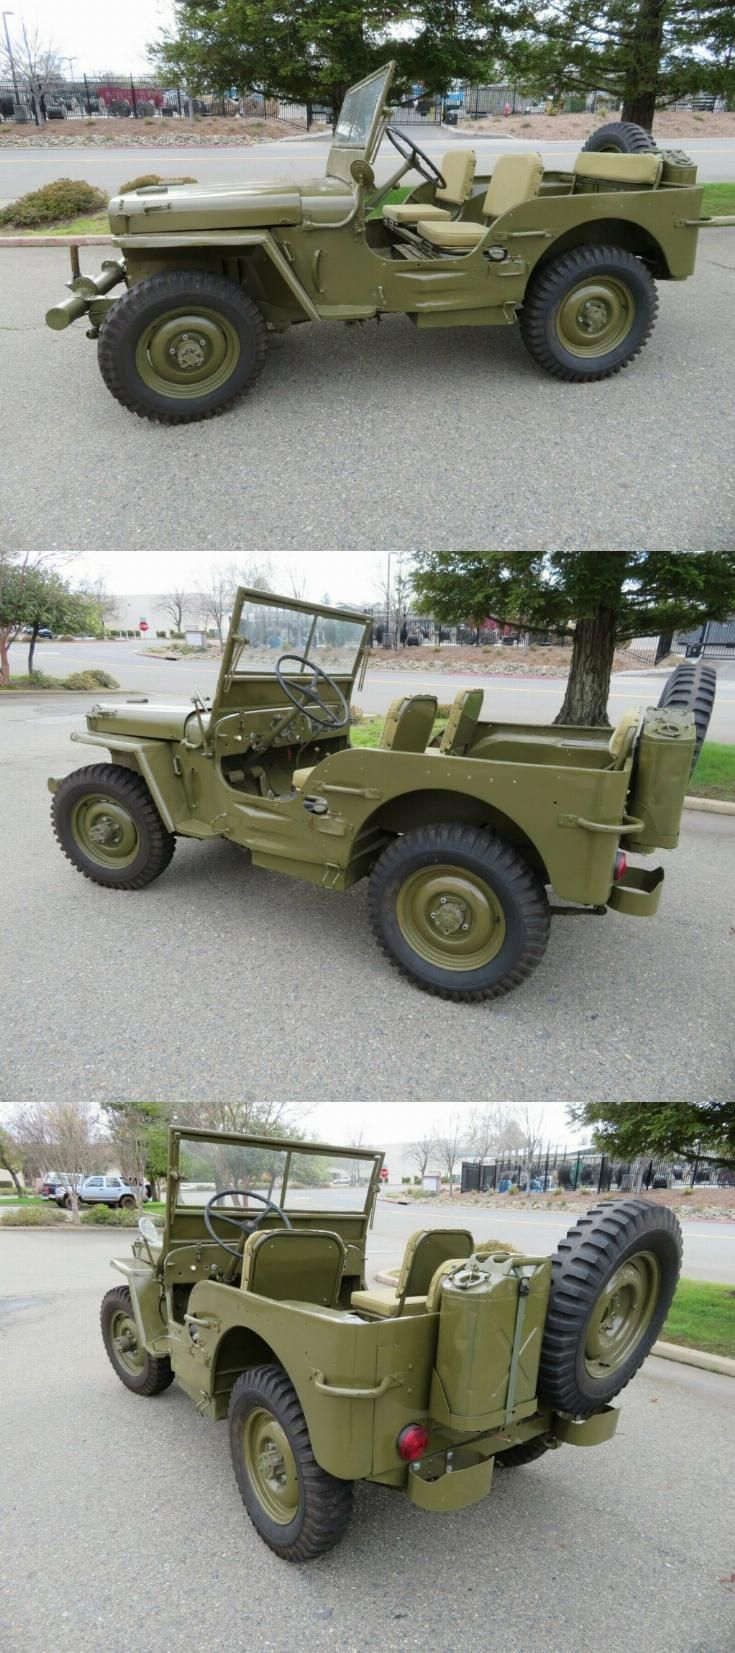 1942 Jeep Willys Mb Willys Jeep Willys Mb